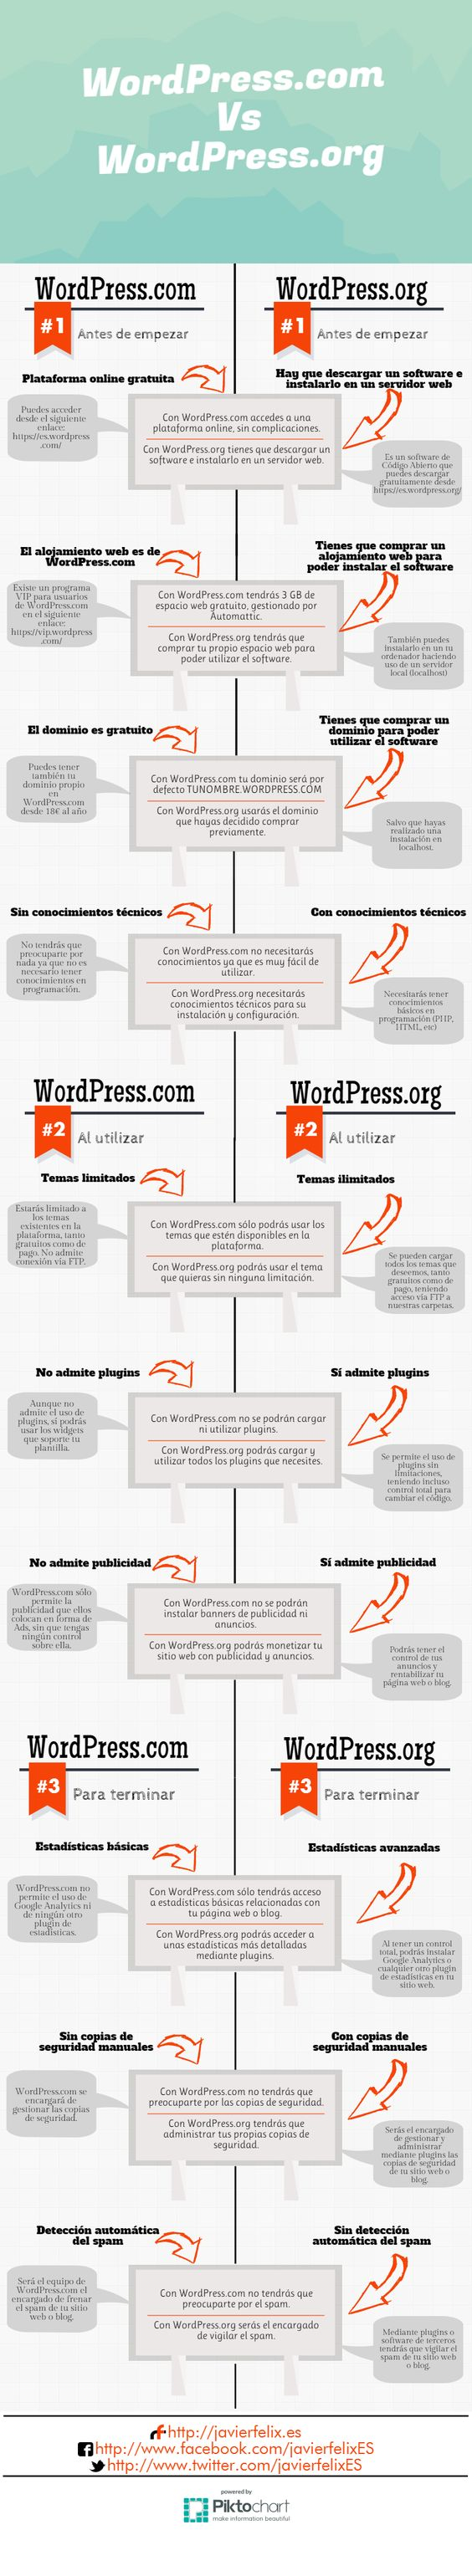 Infografía Diferencias entre WordPress.org y WordPress.com